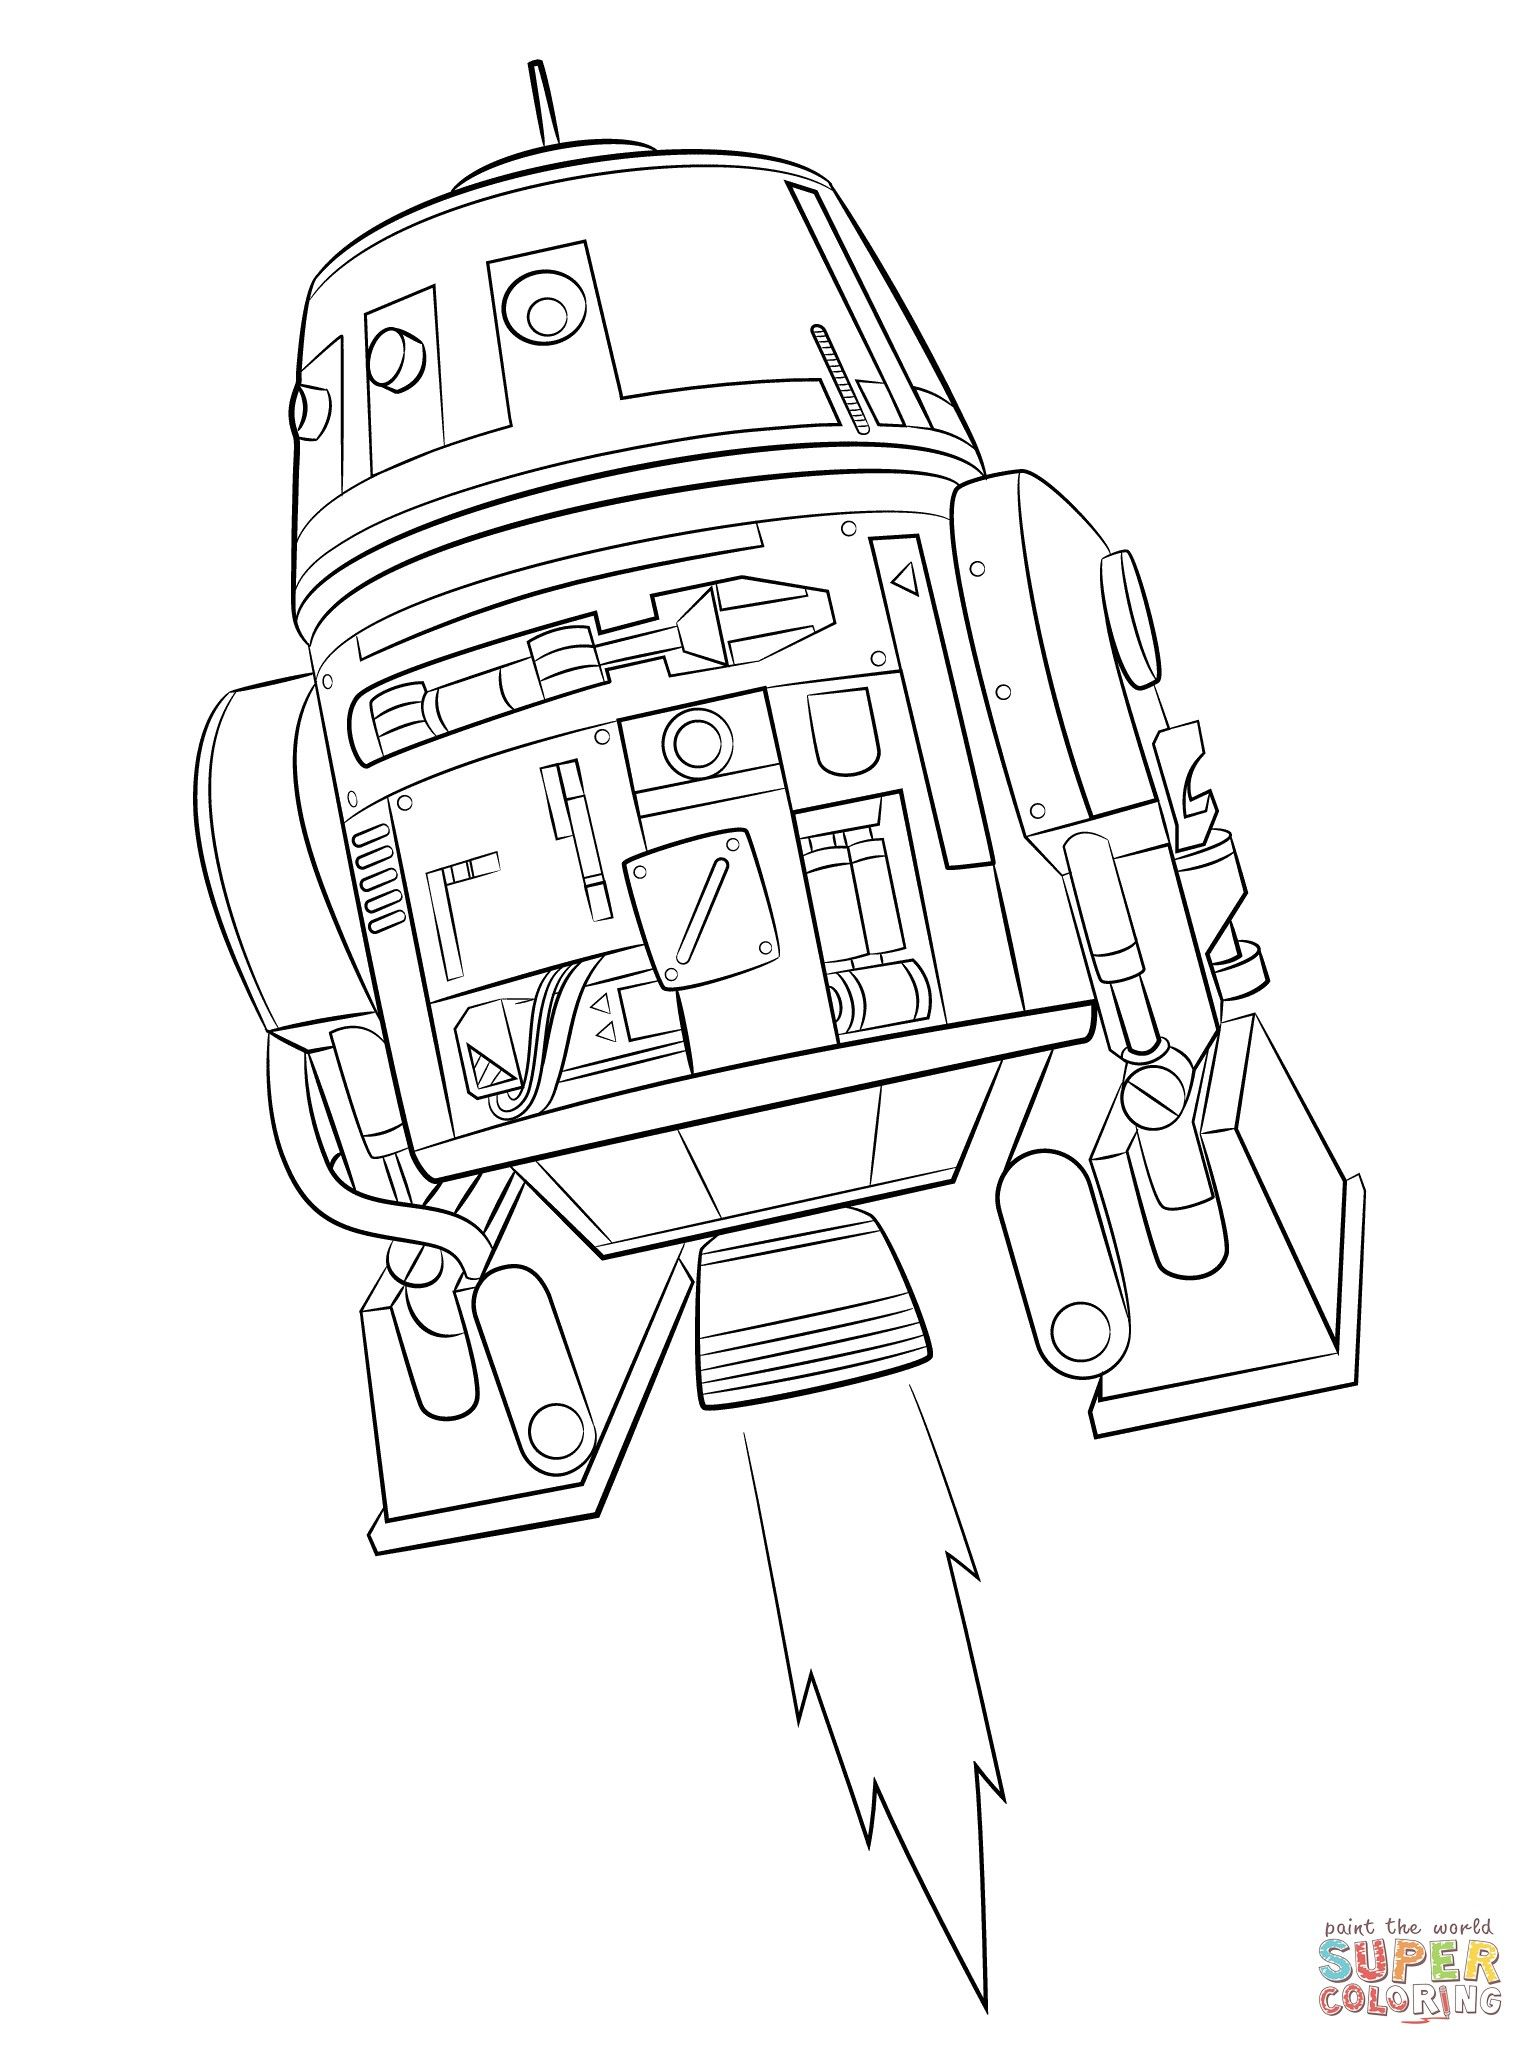 New Coloriage C3po Coloriage C3po New Coloriage C3po To Print